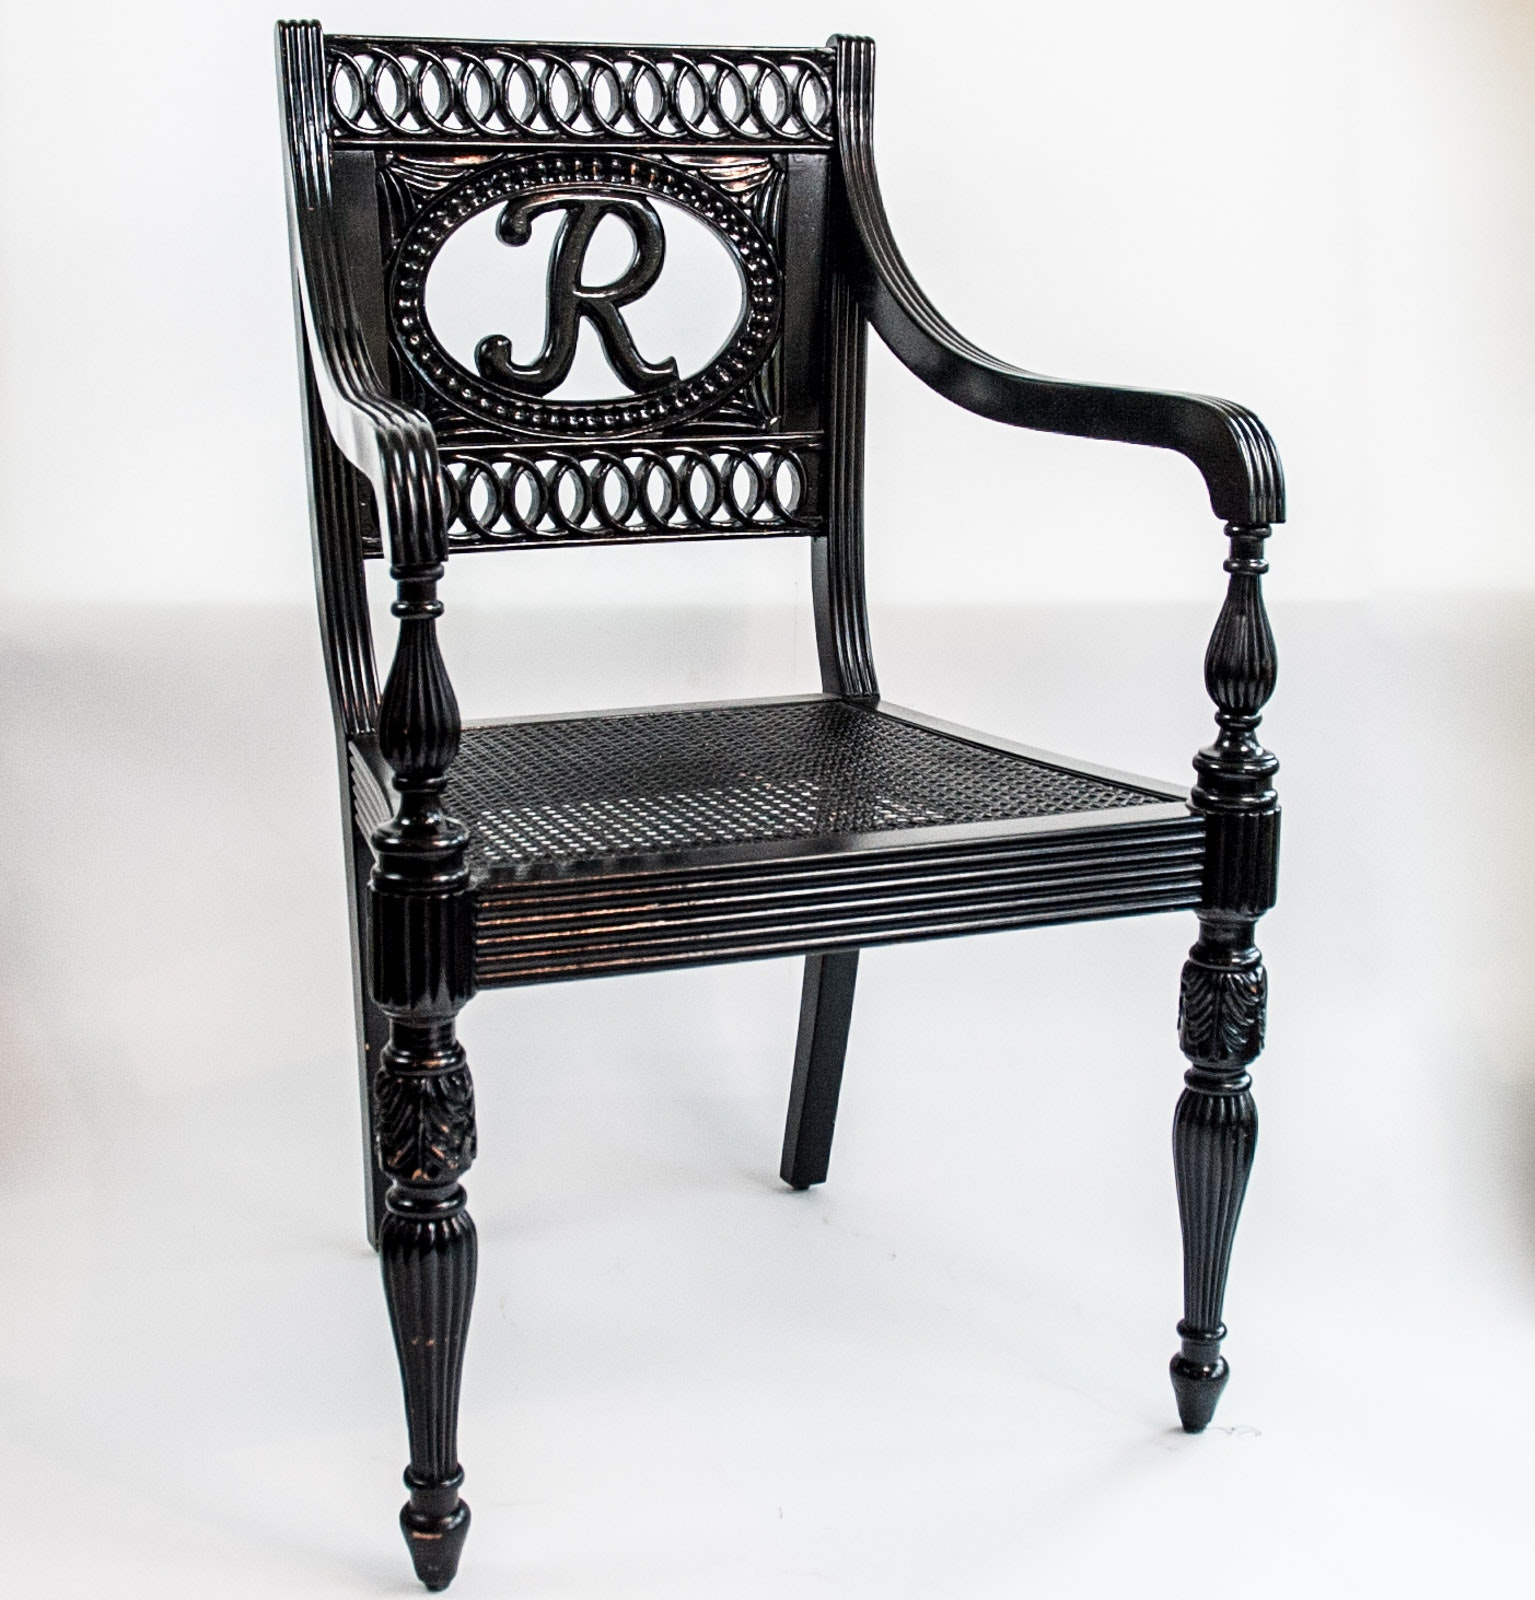 Black Regency Style Cane Seat Chair